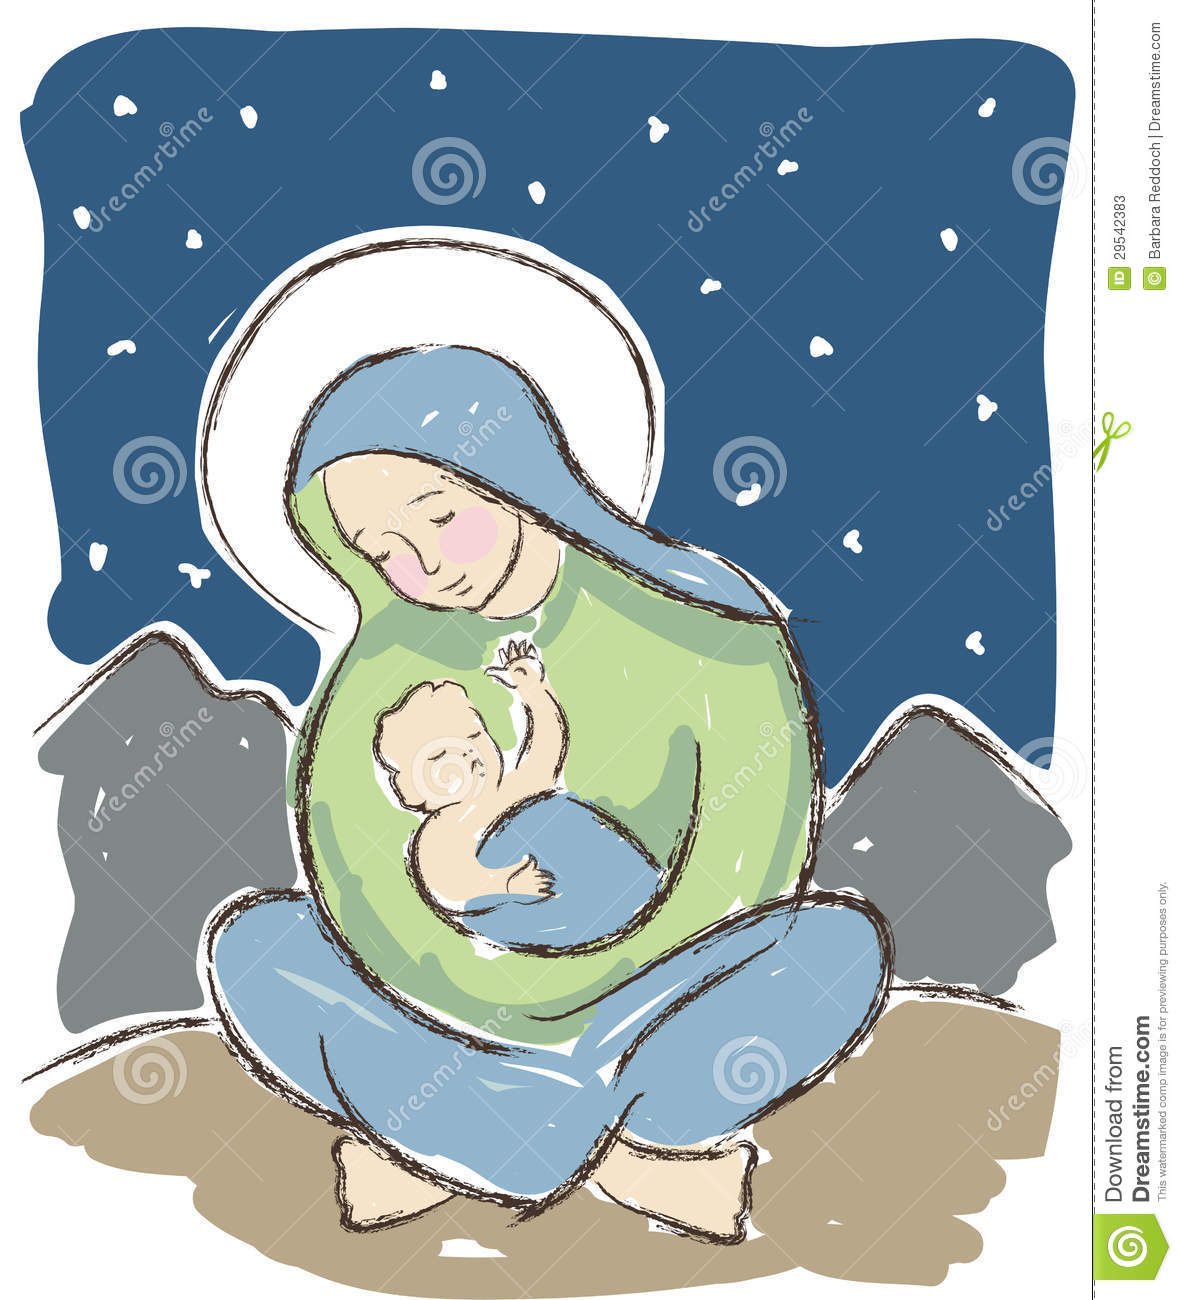 Catholic Child Veneration Of Church Jesus Queen Clipart - Blessed Mother  Virgin Mary, HD Png Download - kindpng